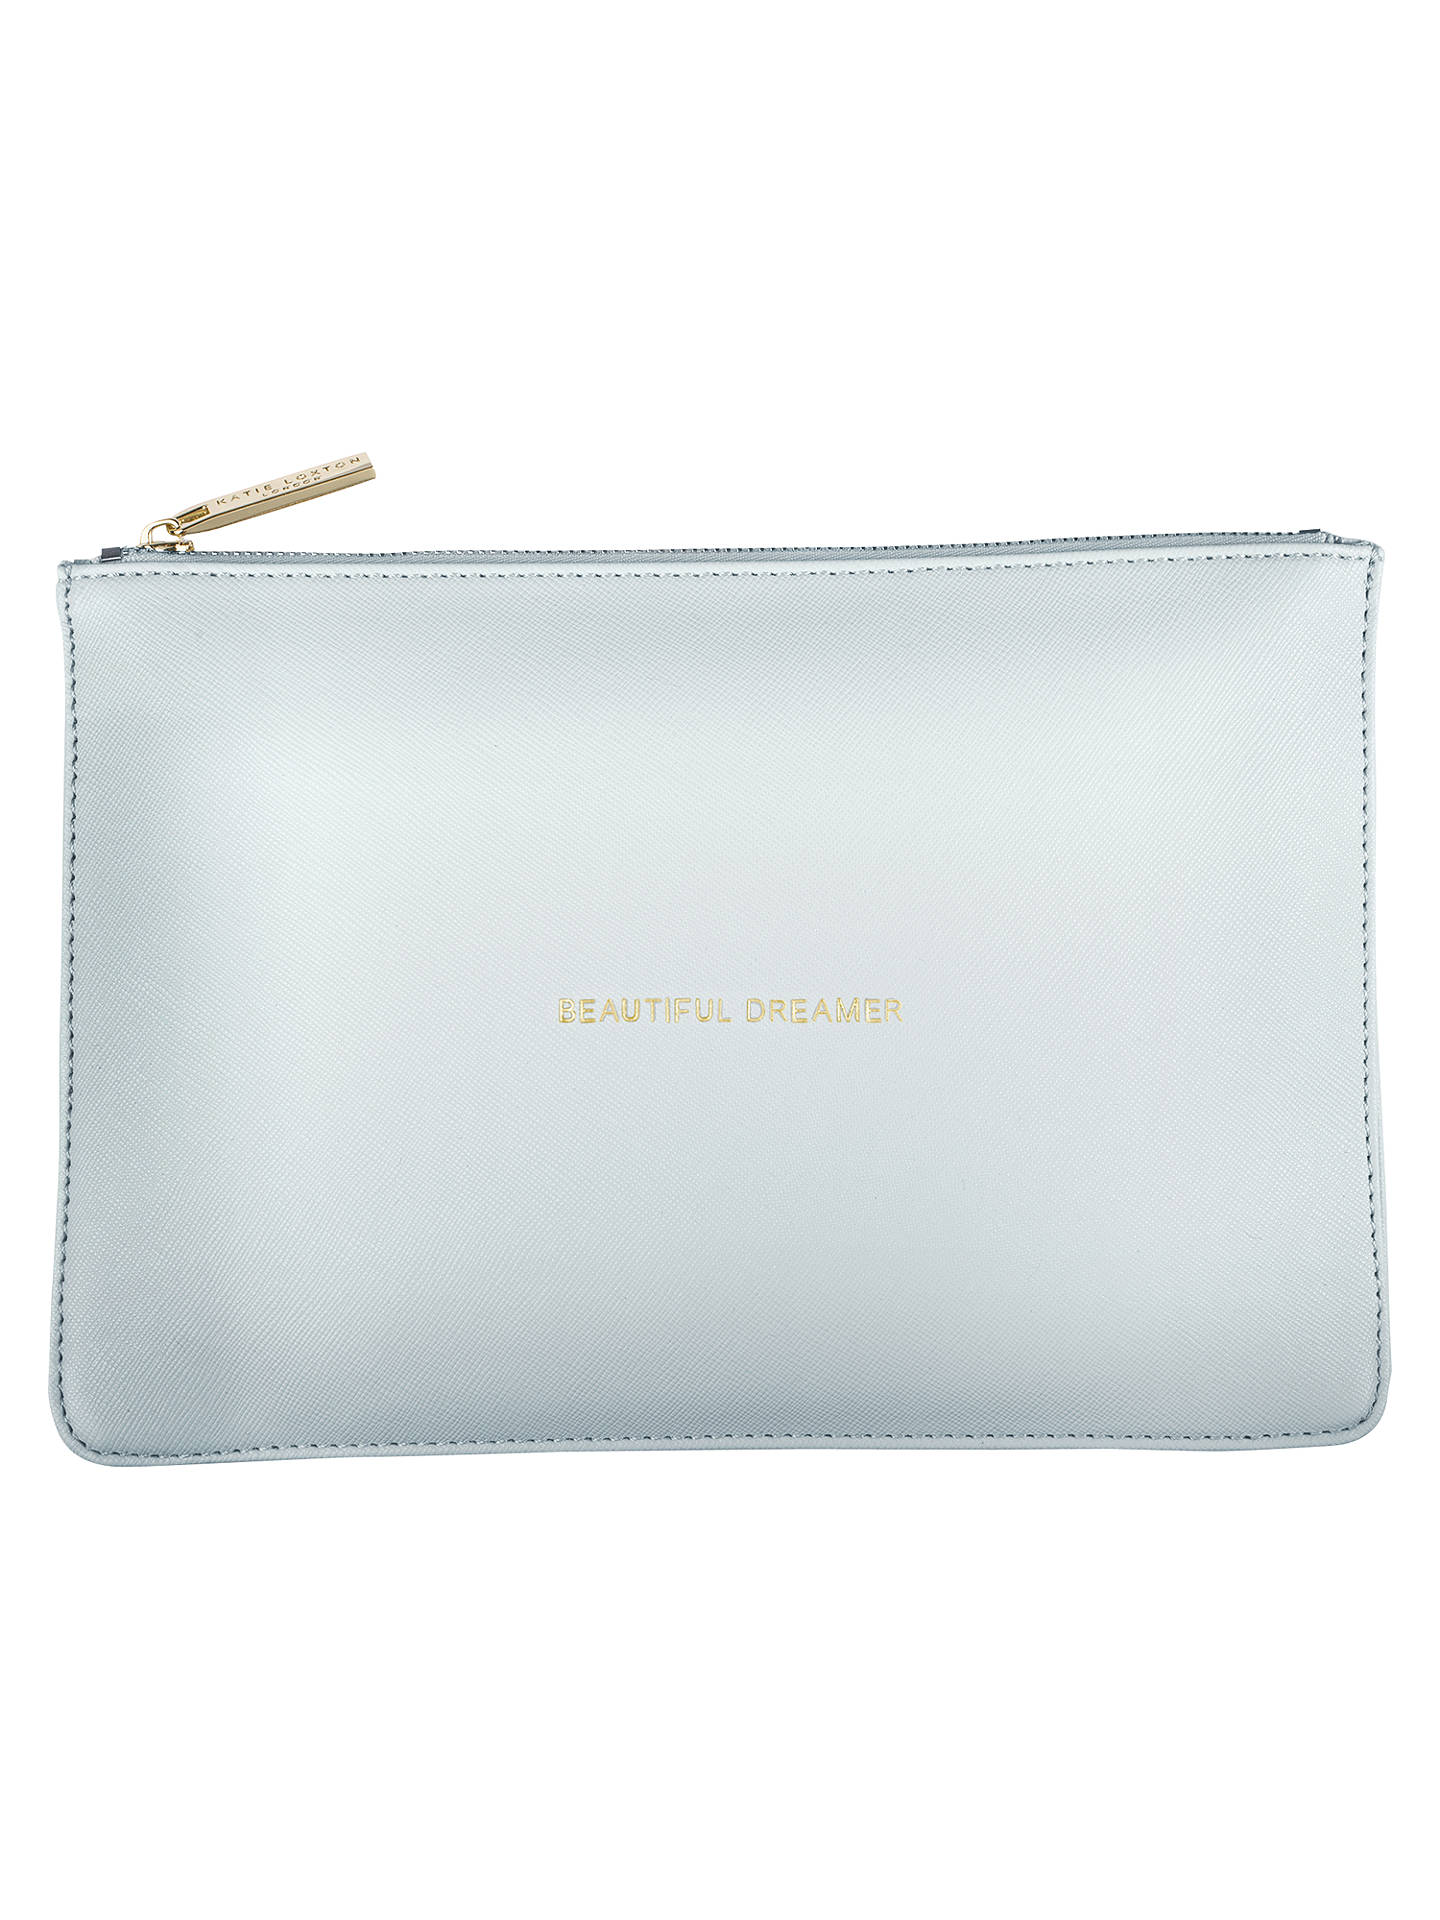 Buy Katie Loxton The Perfect Pouch 'Beautiful Dreamer', Blue Online at johnlewis.com